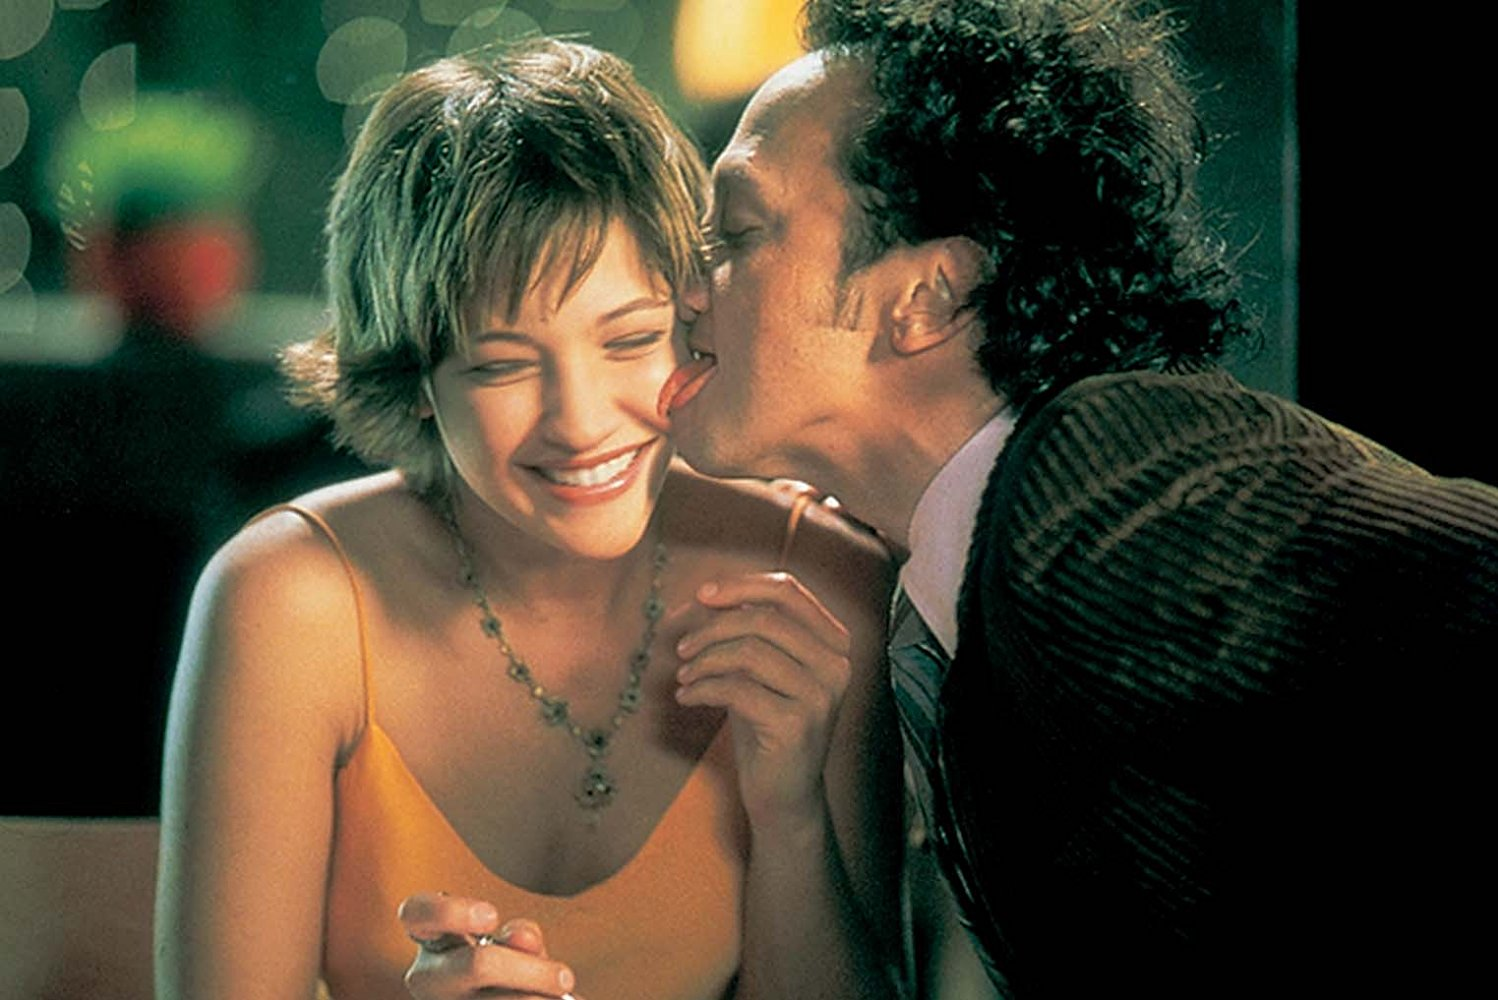 Rob Schneider gives Colleen Haskell a lick in The Animal (2001)